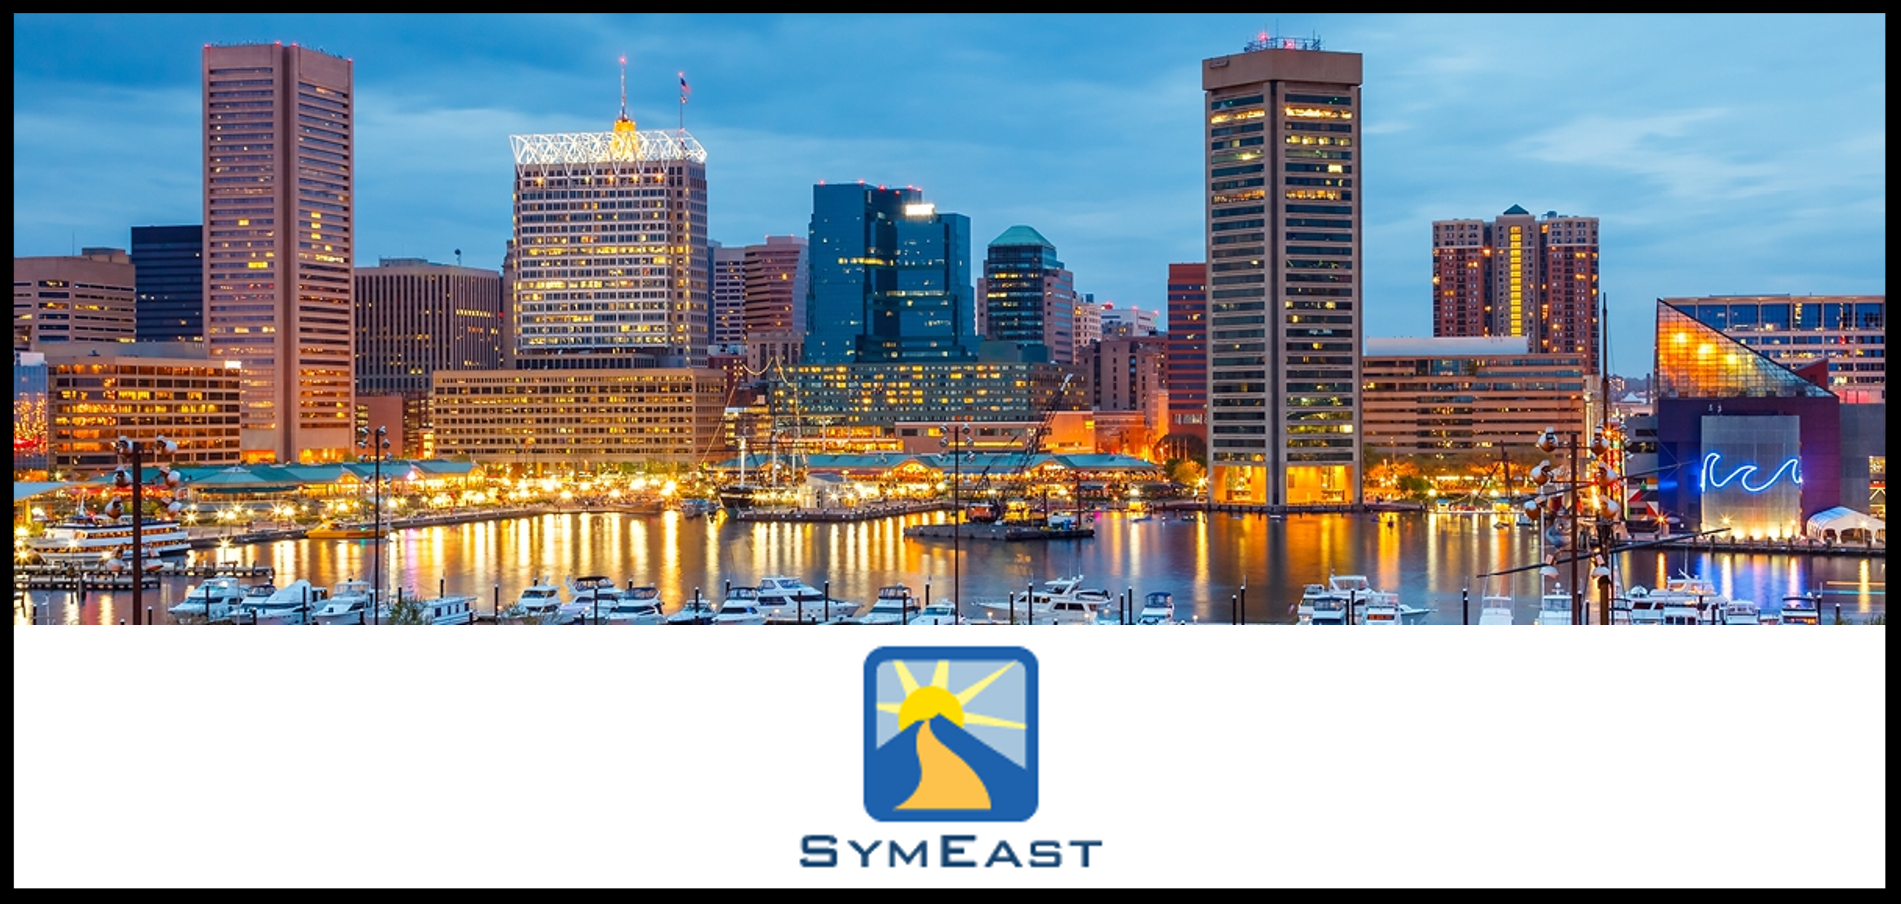 Baltimore_SymEast.png